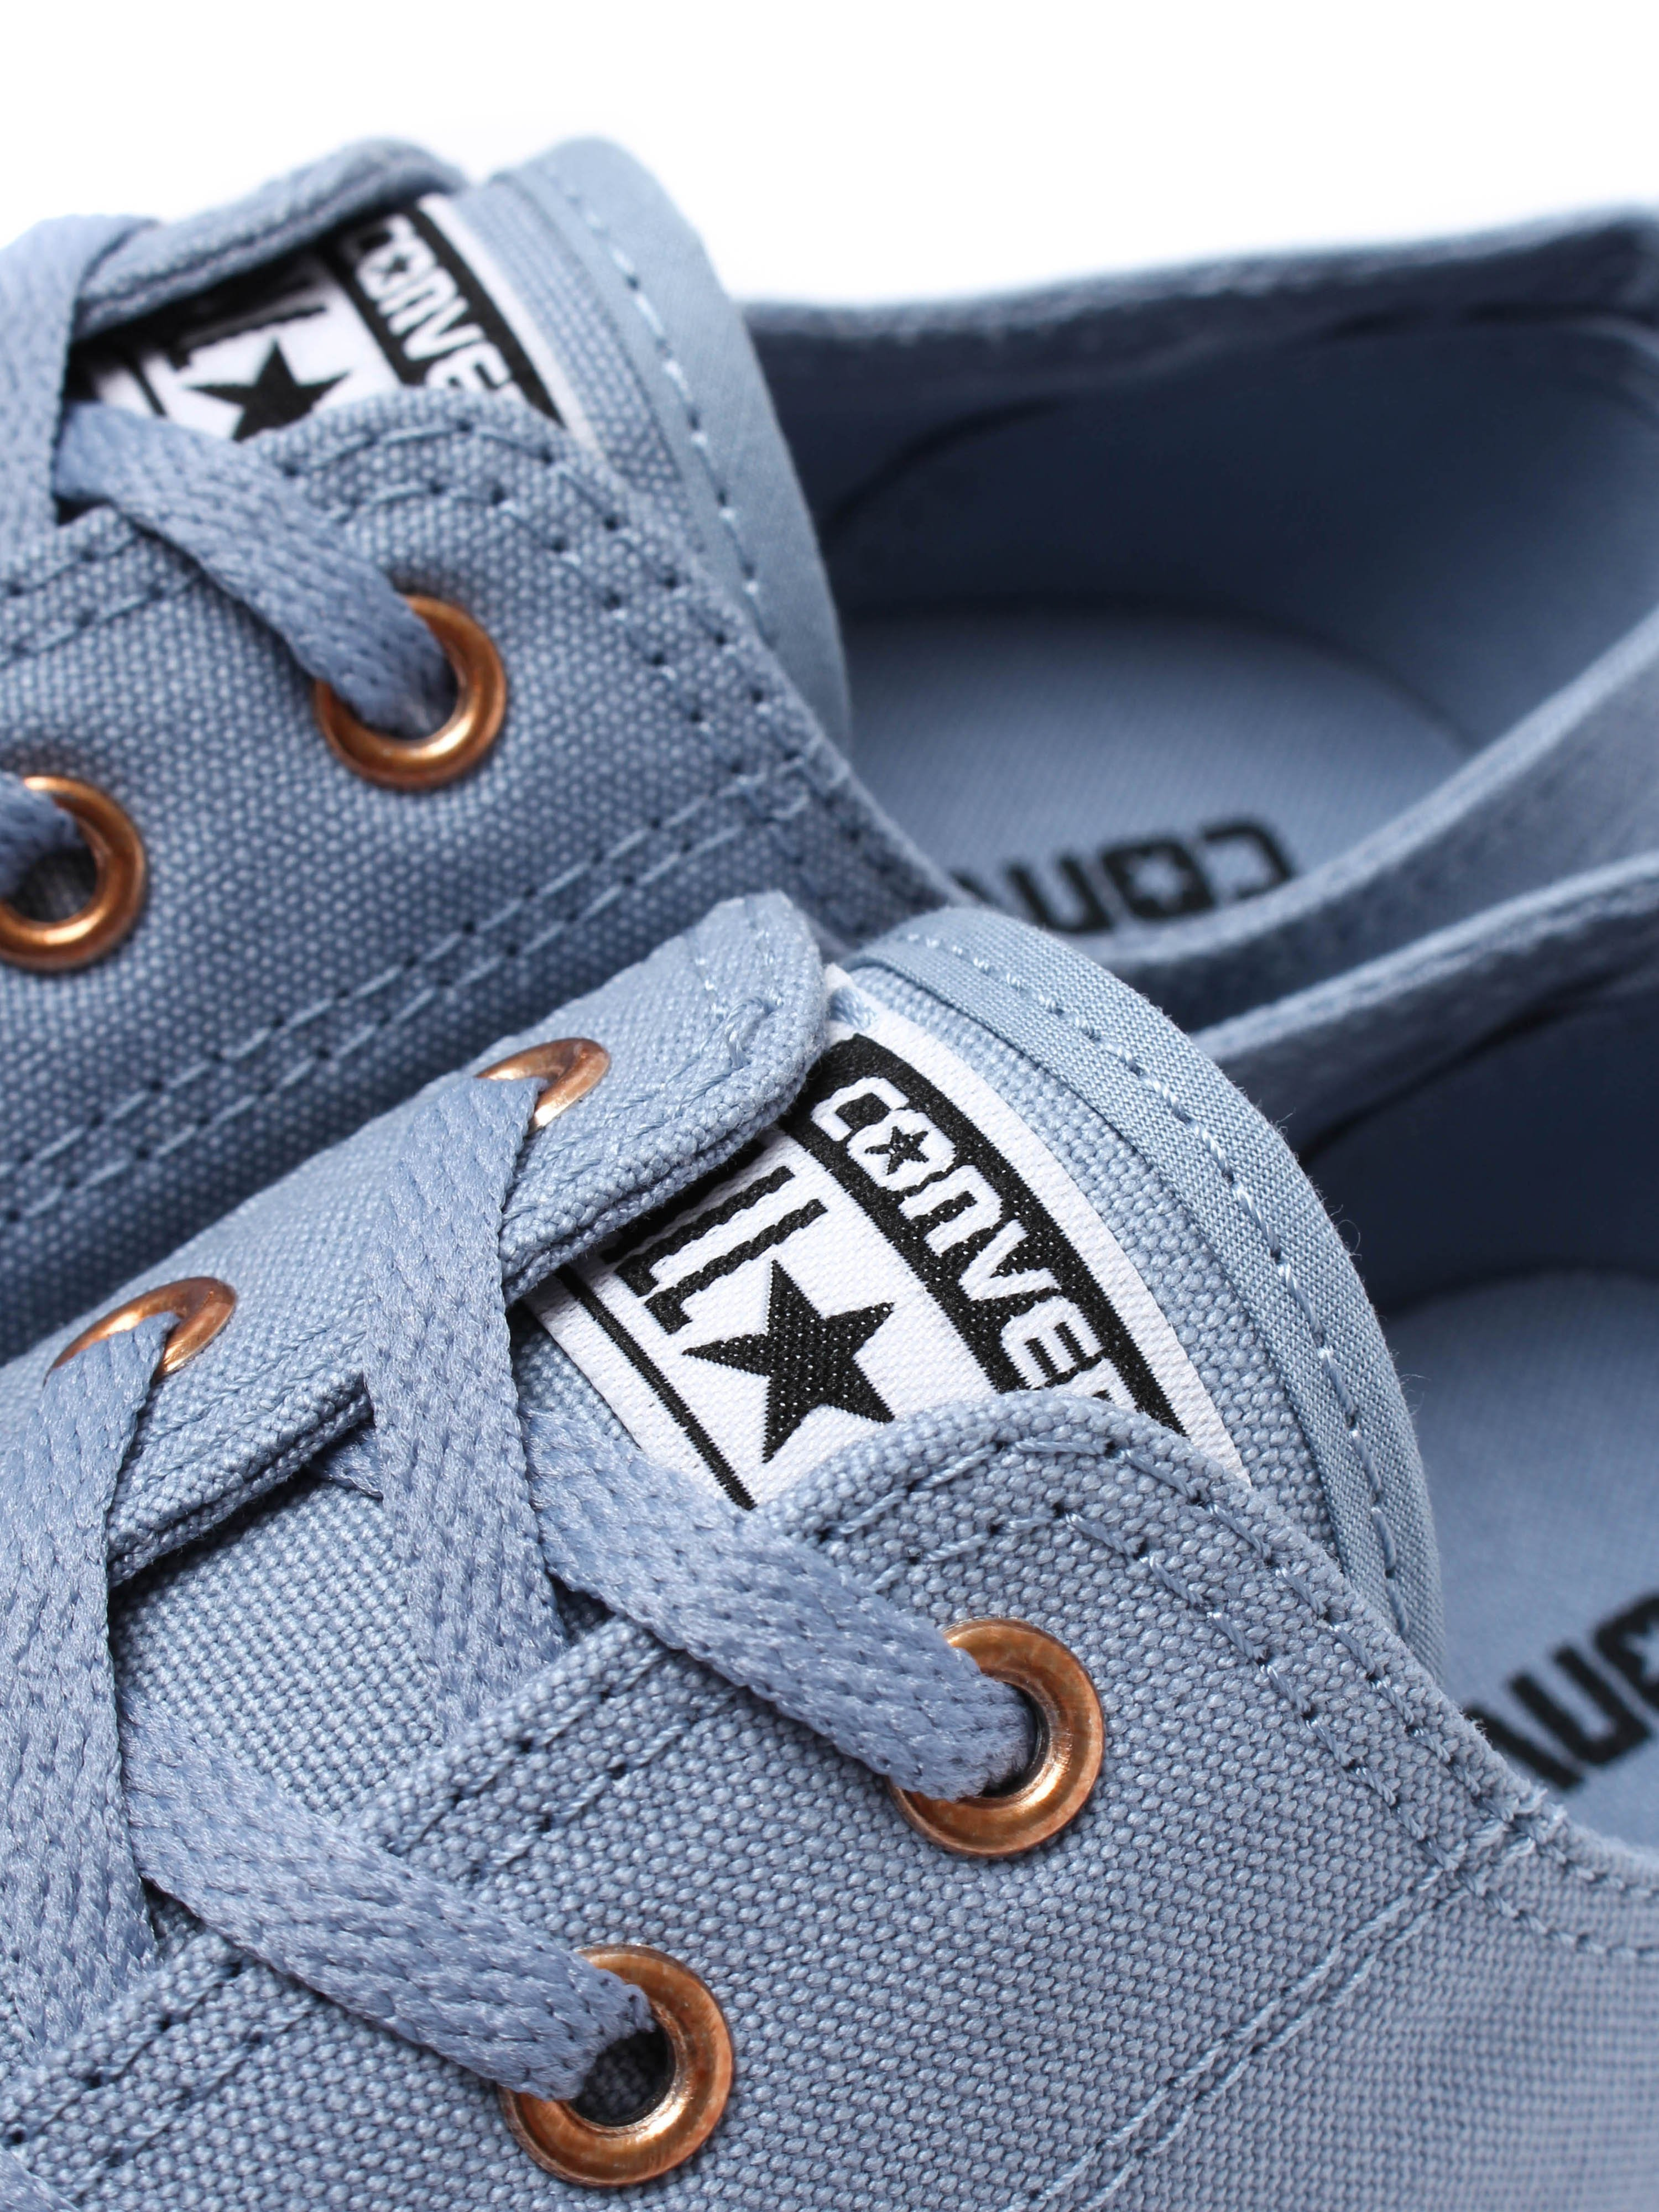 Converse Women's Chuck Taylor All Star Dainty OX Canvas Trainers - Blue Slate